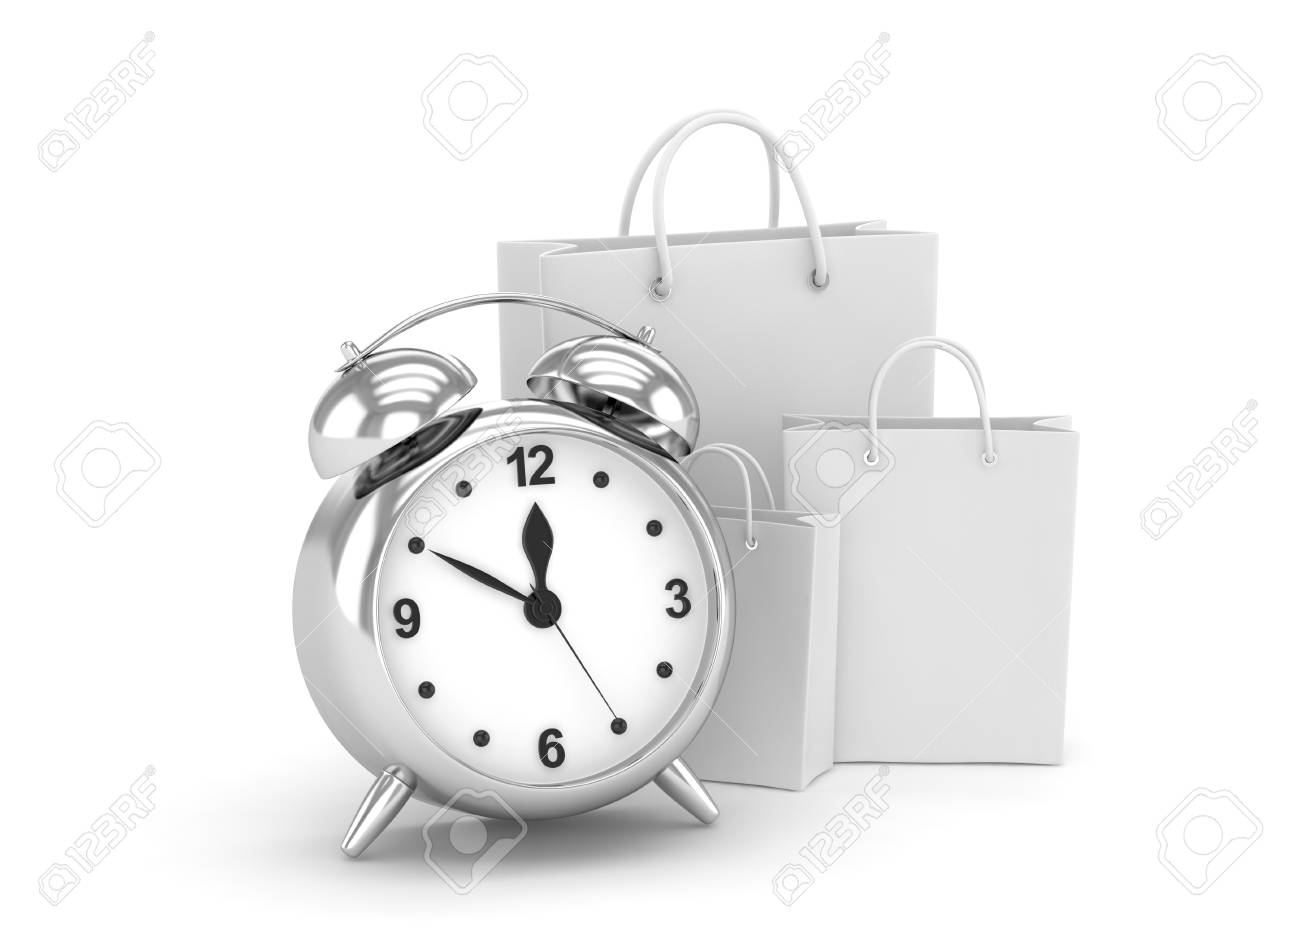 Buy Clock Alarm Clock And Shopping Bags Time To Buy Concept 3d Rendering